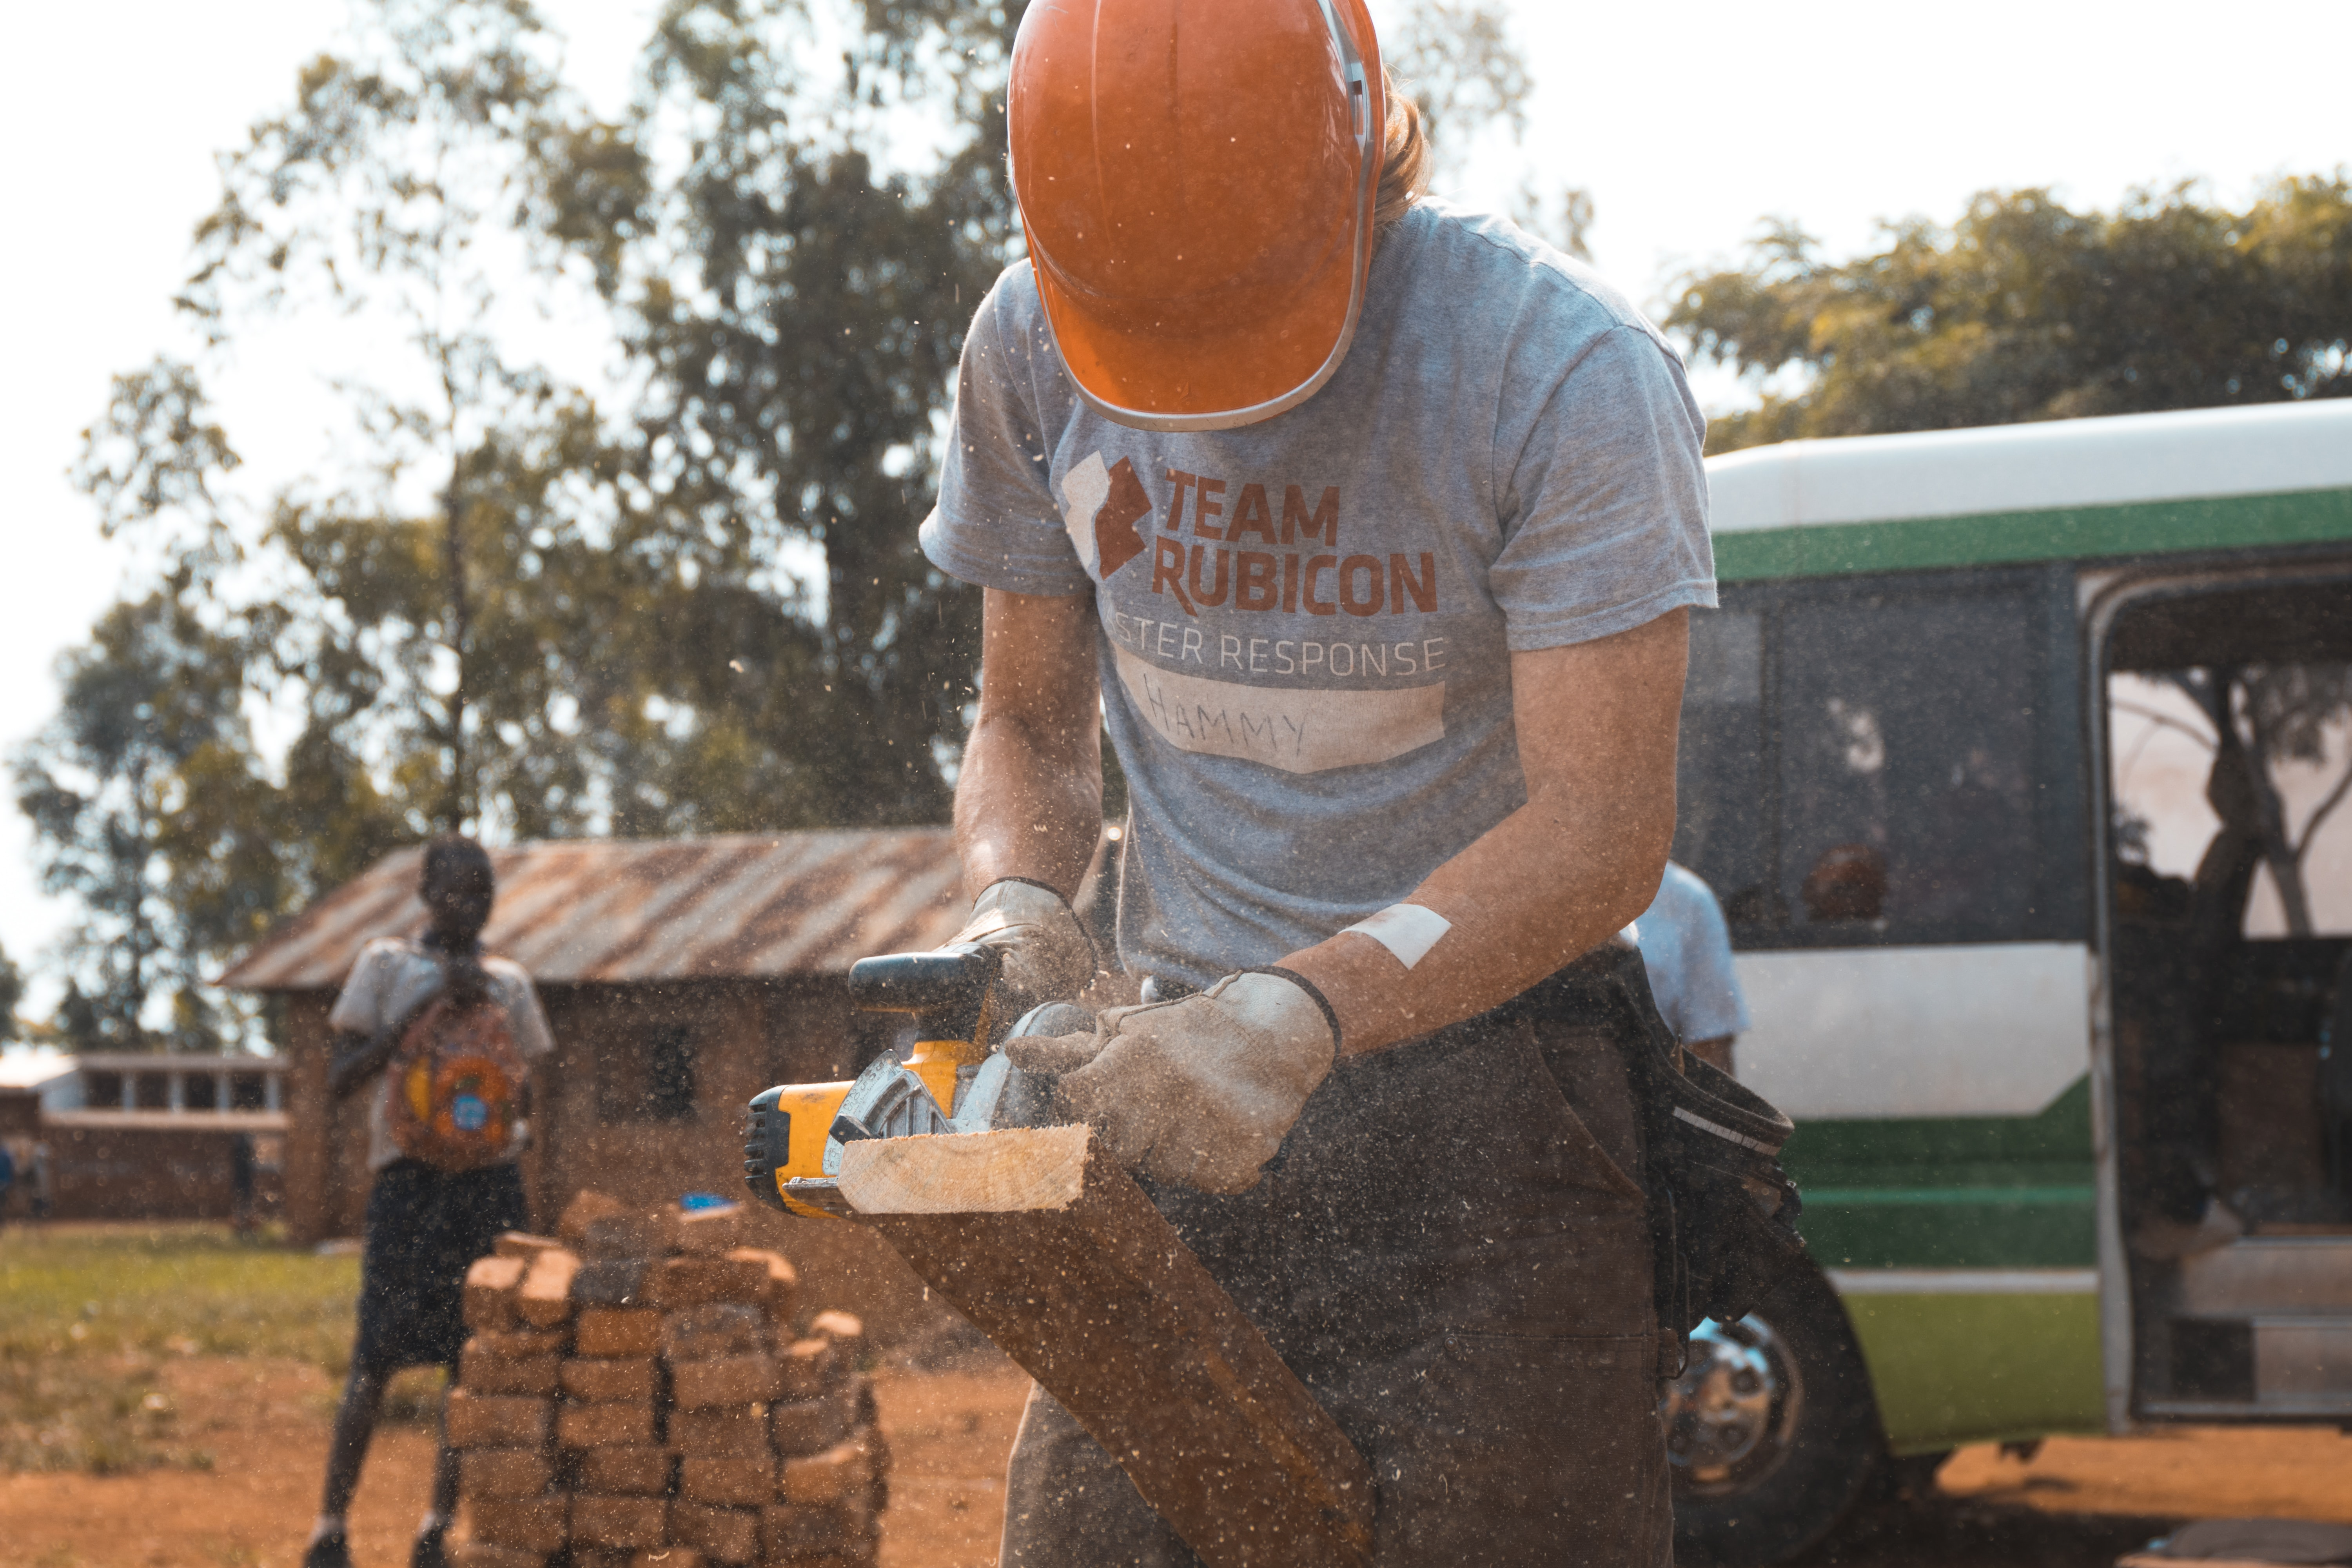 A man from a relief organization helps rebuild after a disaster in Uganda